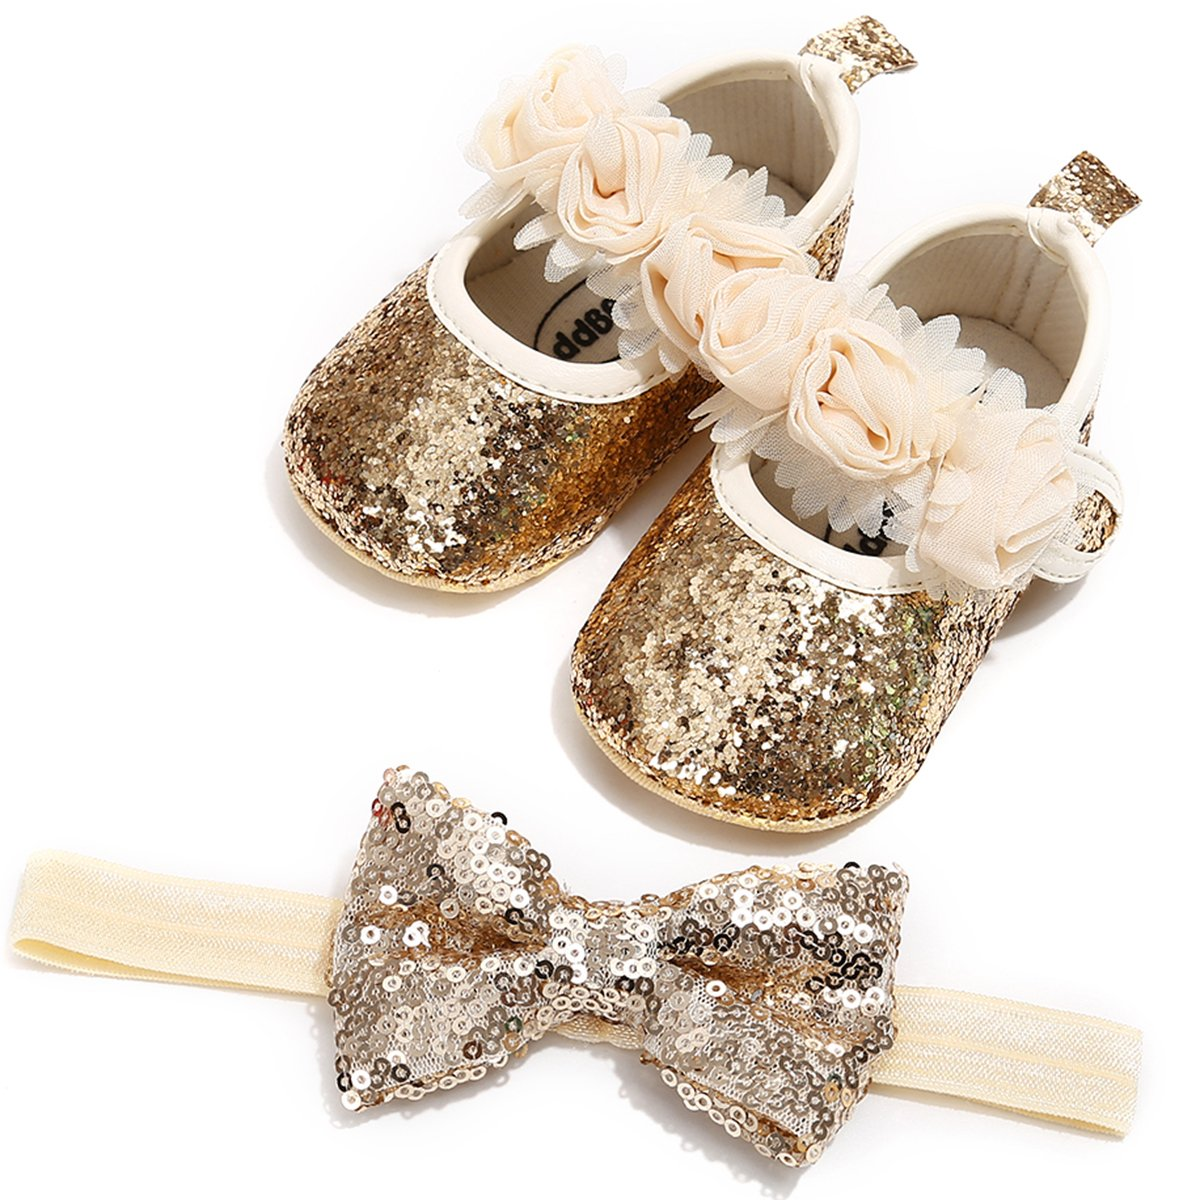 LIVEBOX Baby Infant Girls Shoes, Soft Sole Prewalker Mary Jane Princess Dress Crib Shoes with Free Baby Headband for Attend Wedding Birthday Party Events (Gold, M)